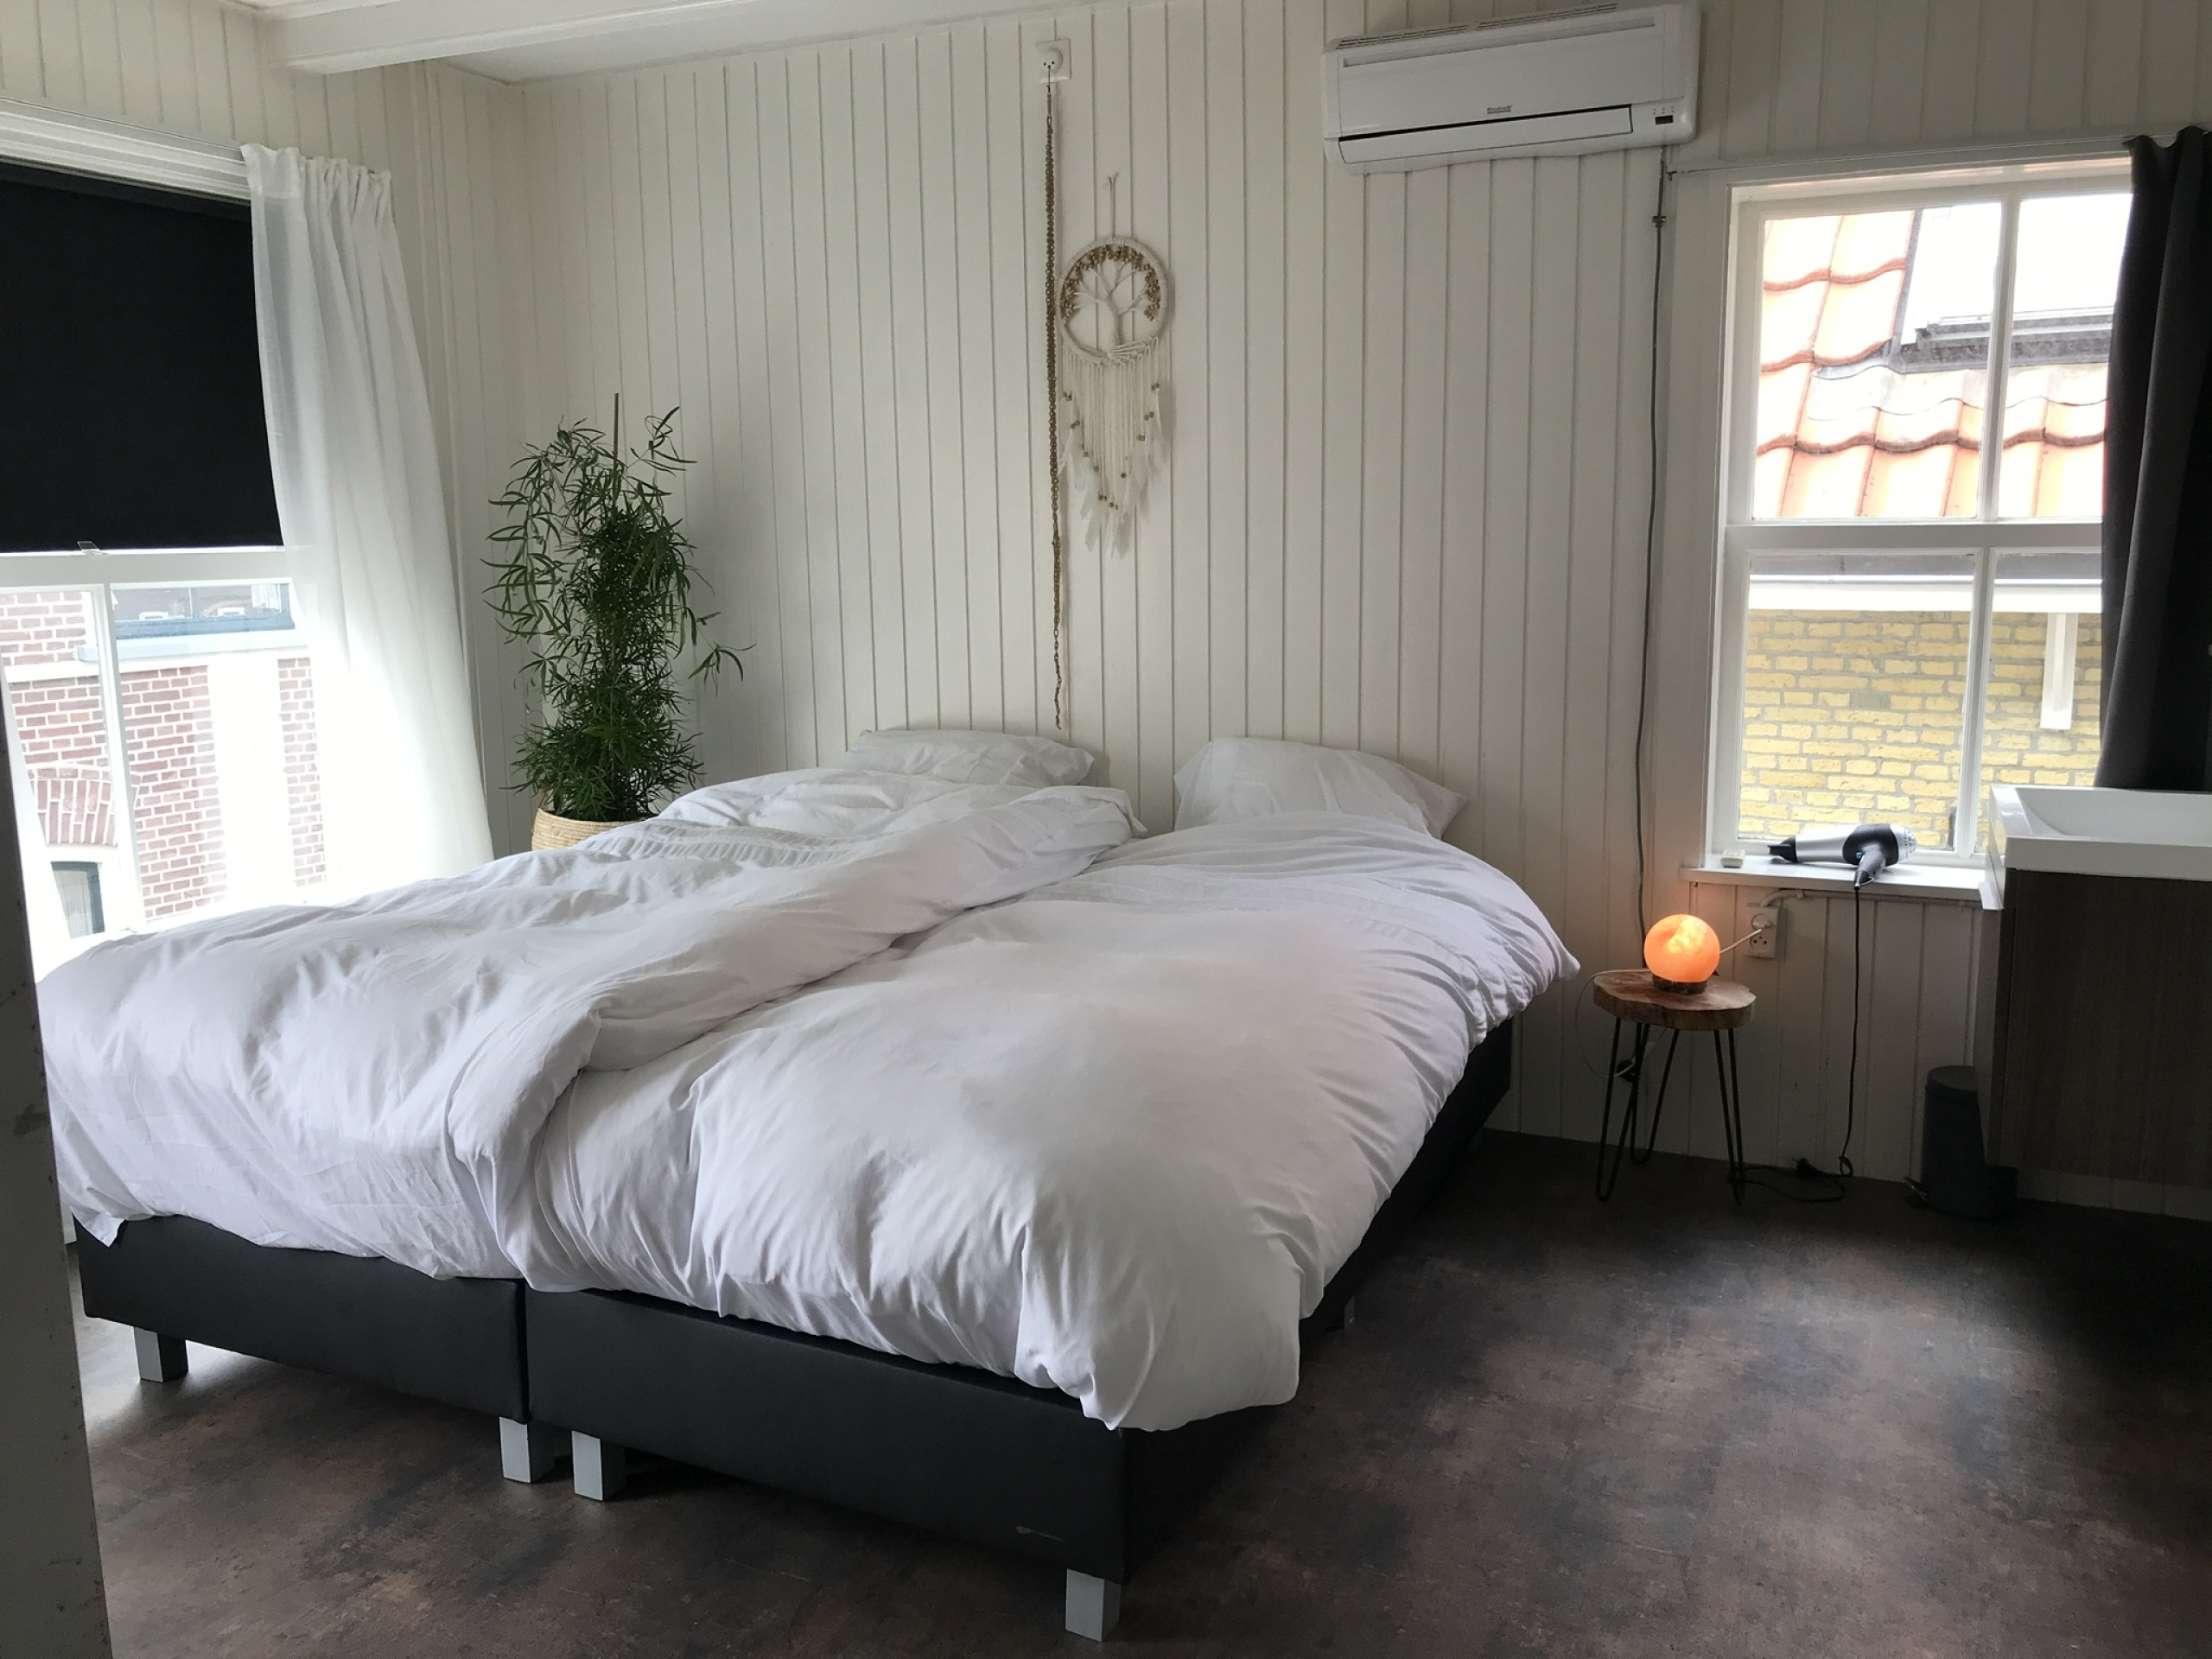 Very spacious B&B in a former hotel, quietly located in the heart of Den Burg